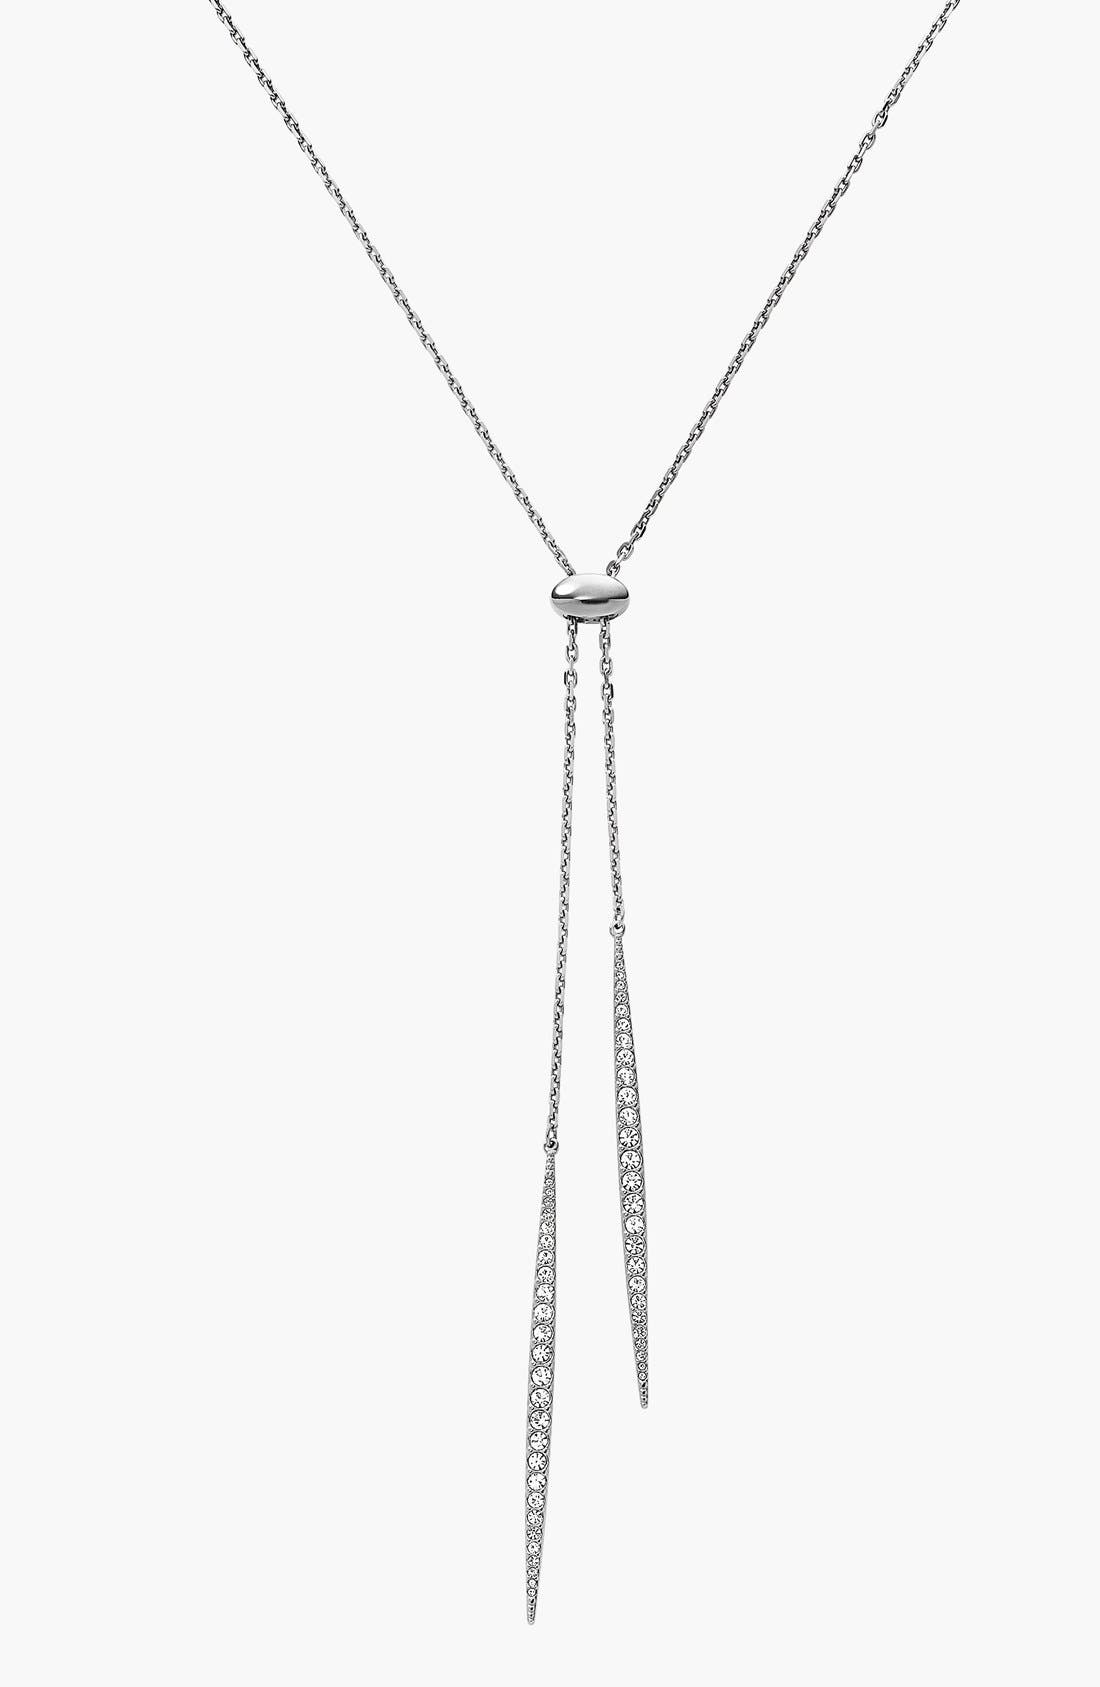 Alternate Image 1 Selected - Michael Kors 'Matchstick' Pavé Lariat Necklace